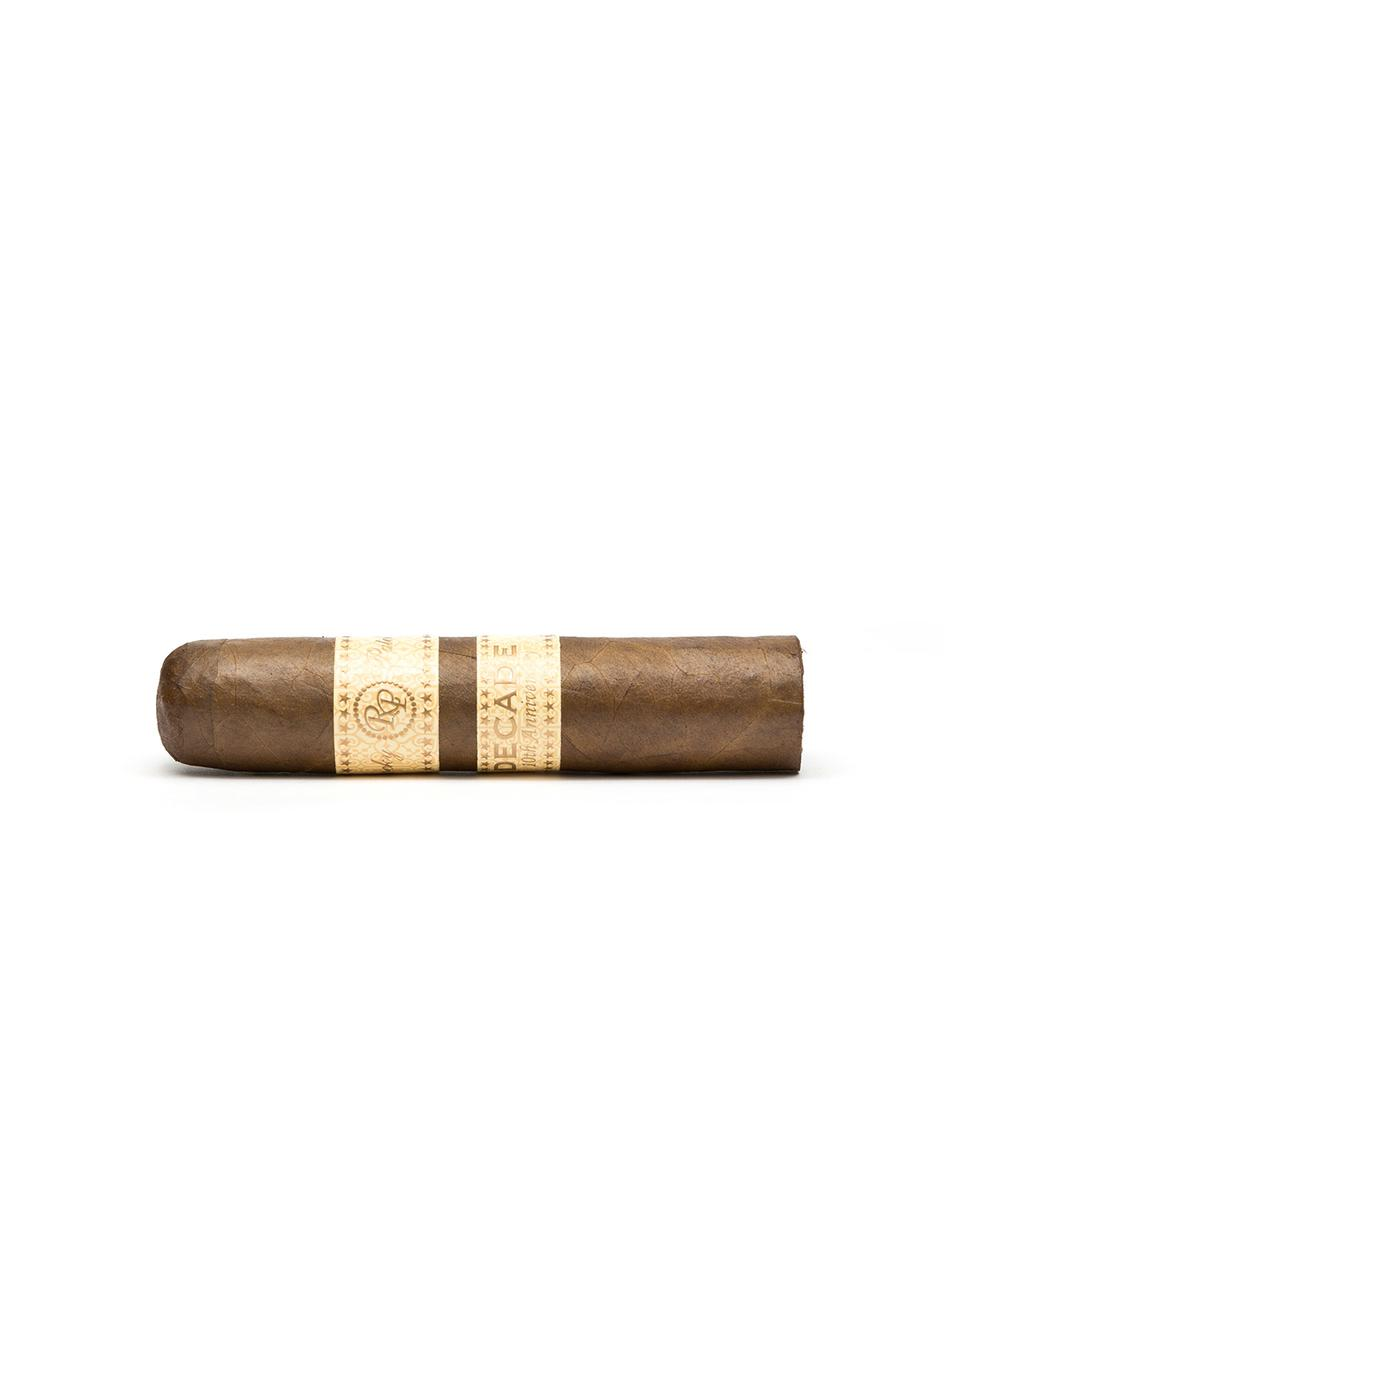 Rocky Patel Decade Short Robusto